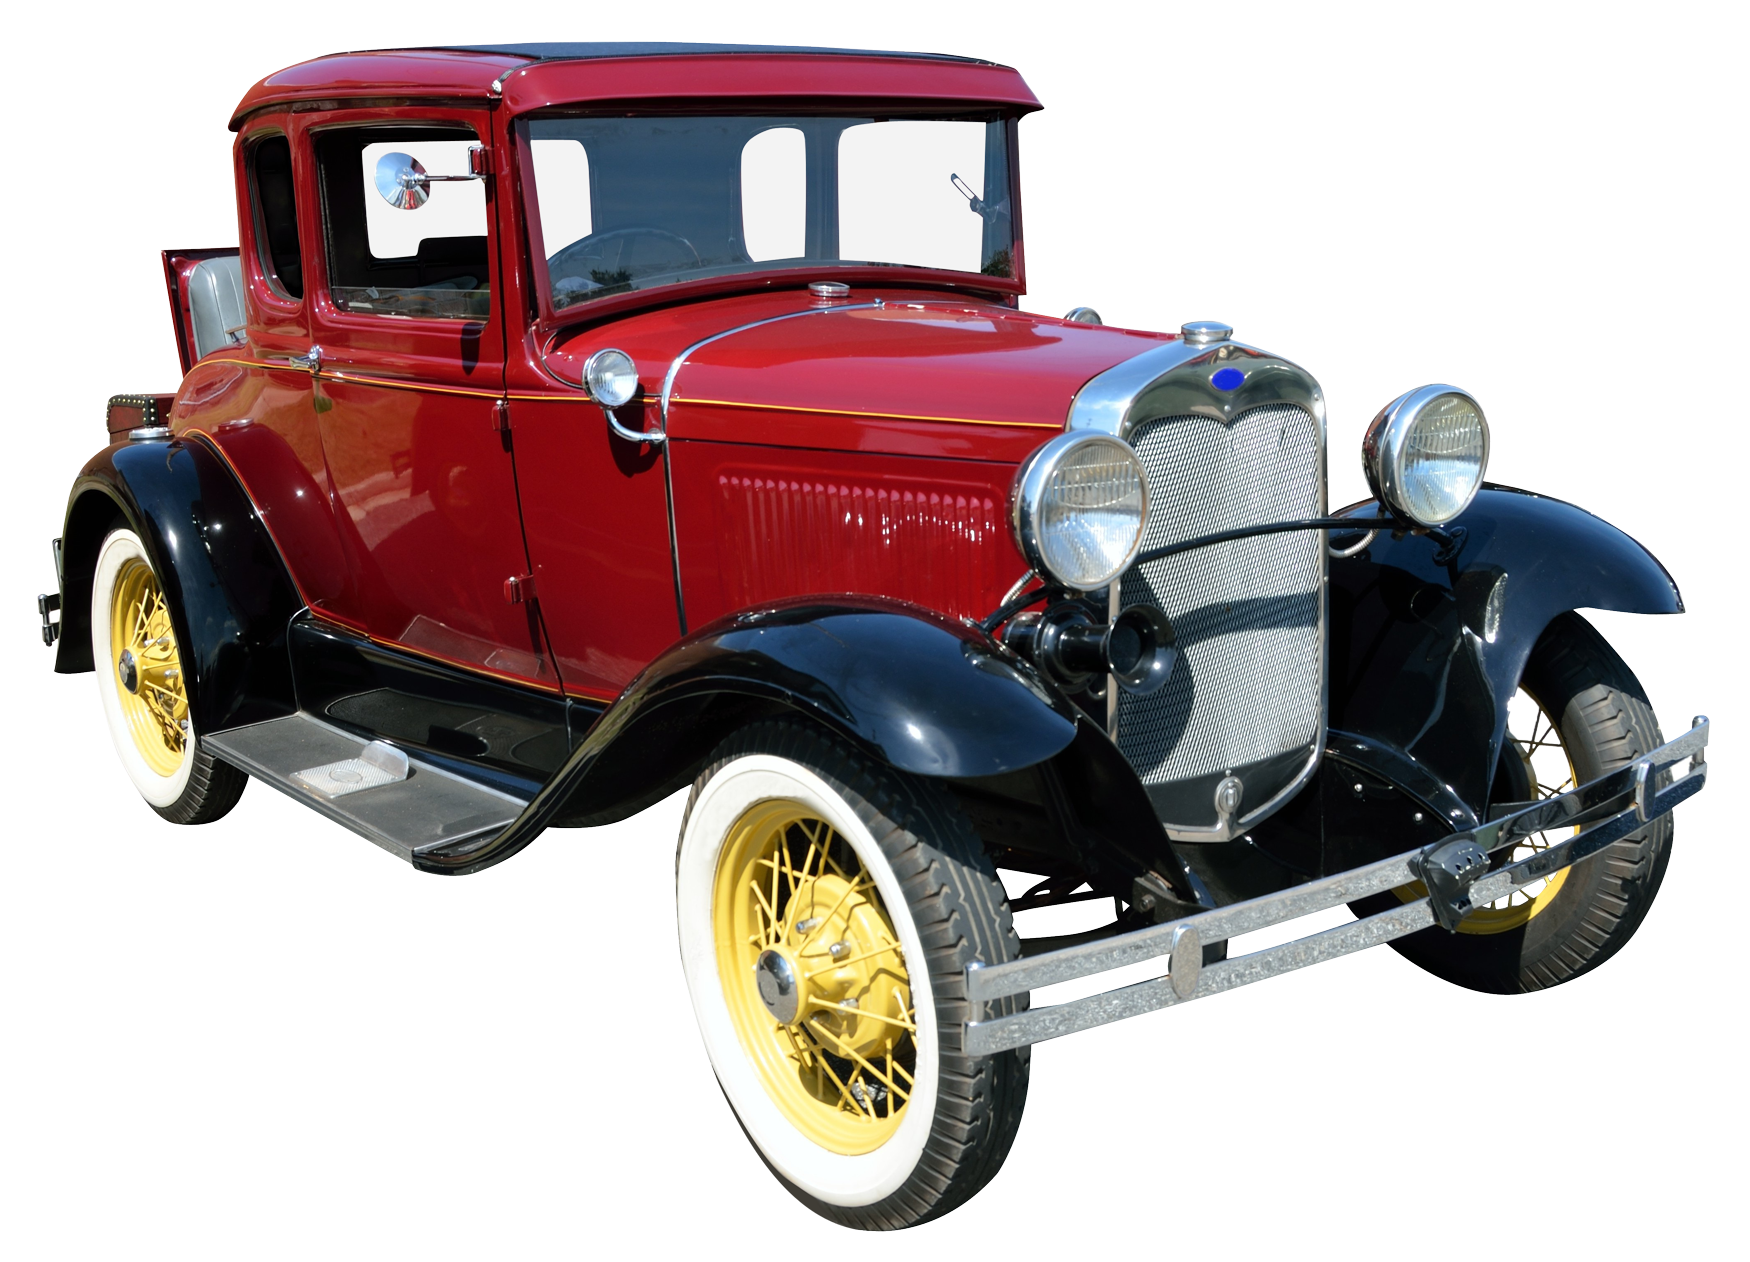 Vintage car clipart free clipart black and white library Vintage Car PNG Image - PurePNG | Free transparent CC0 PNG Image Library clipart black and white library